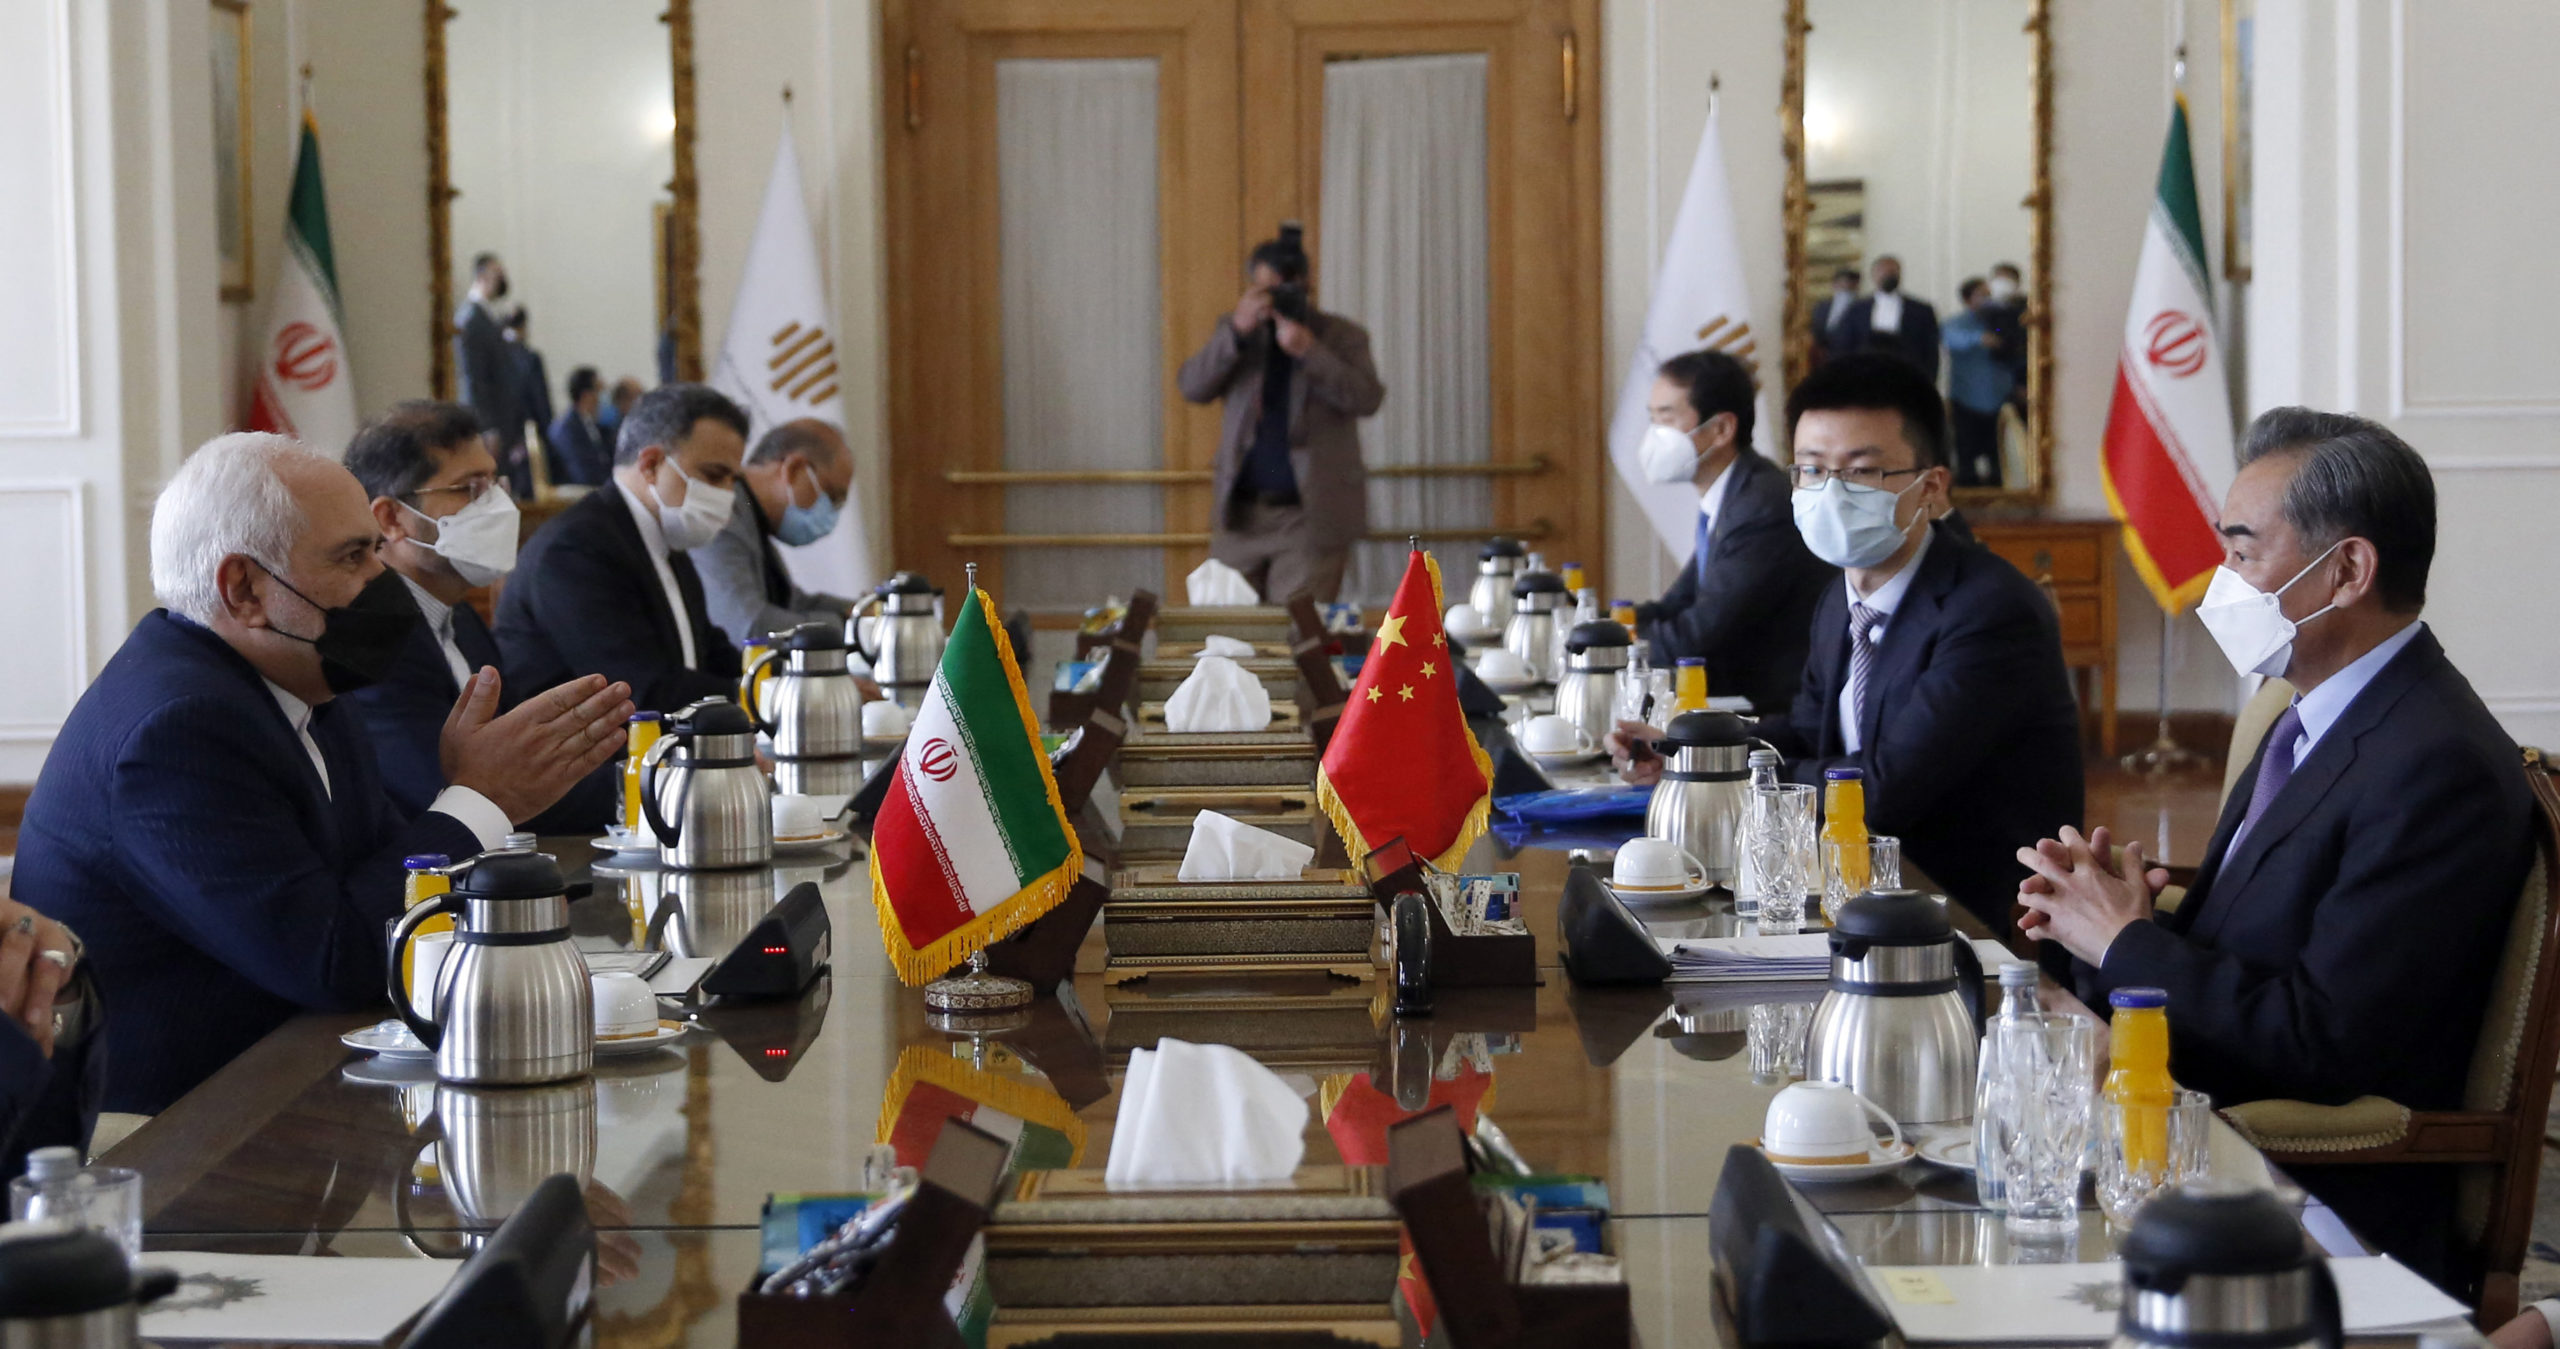 Iranian Foreign Minister Mohammad Javad Zarif (L) meets with his Chinese counterpart Wang Yi (R), in the capital Tehran, on March 27, 2021. (Photo by -/AFP via Getty Images)